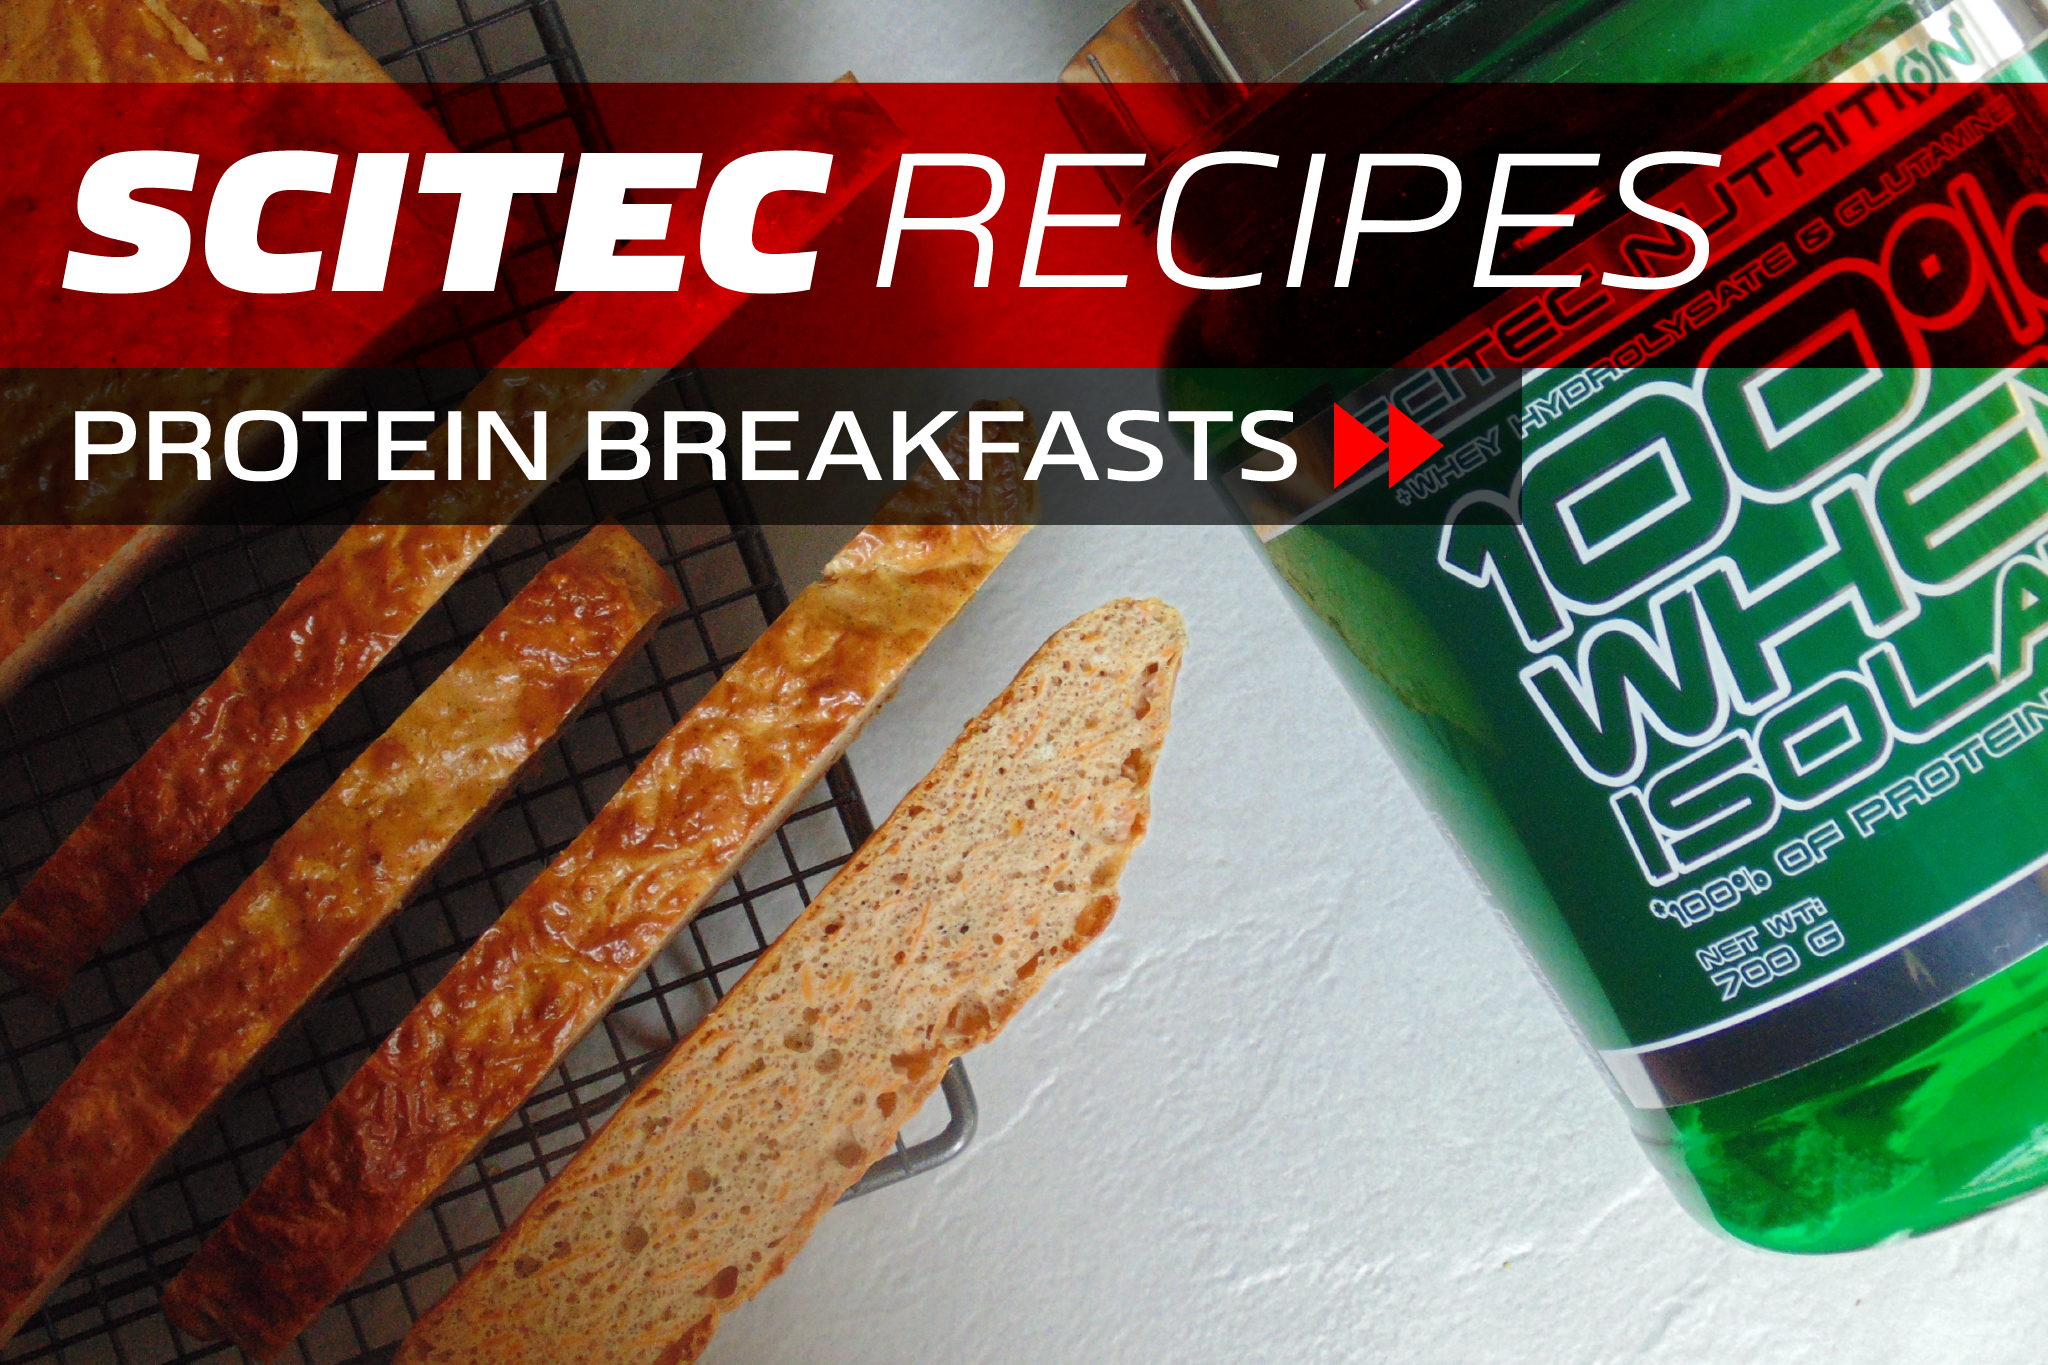 Scitec Recipes: Easy Protein Breakfasts